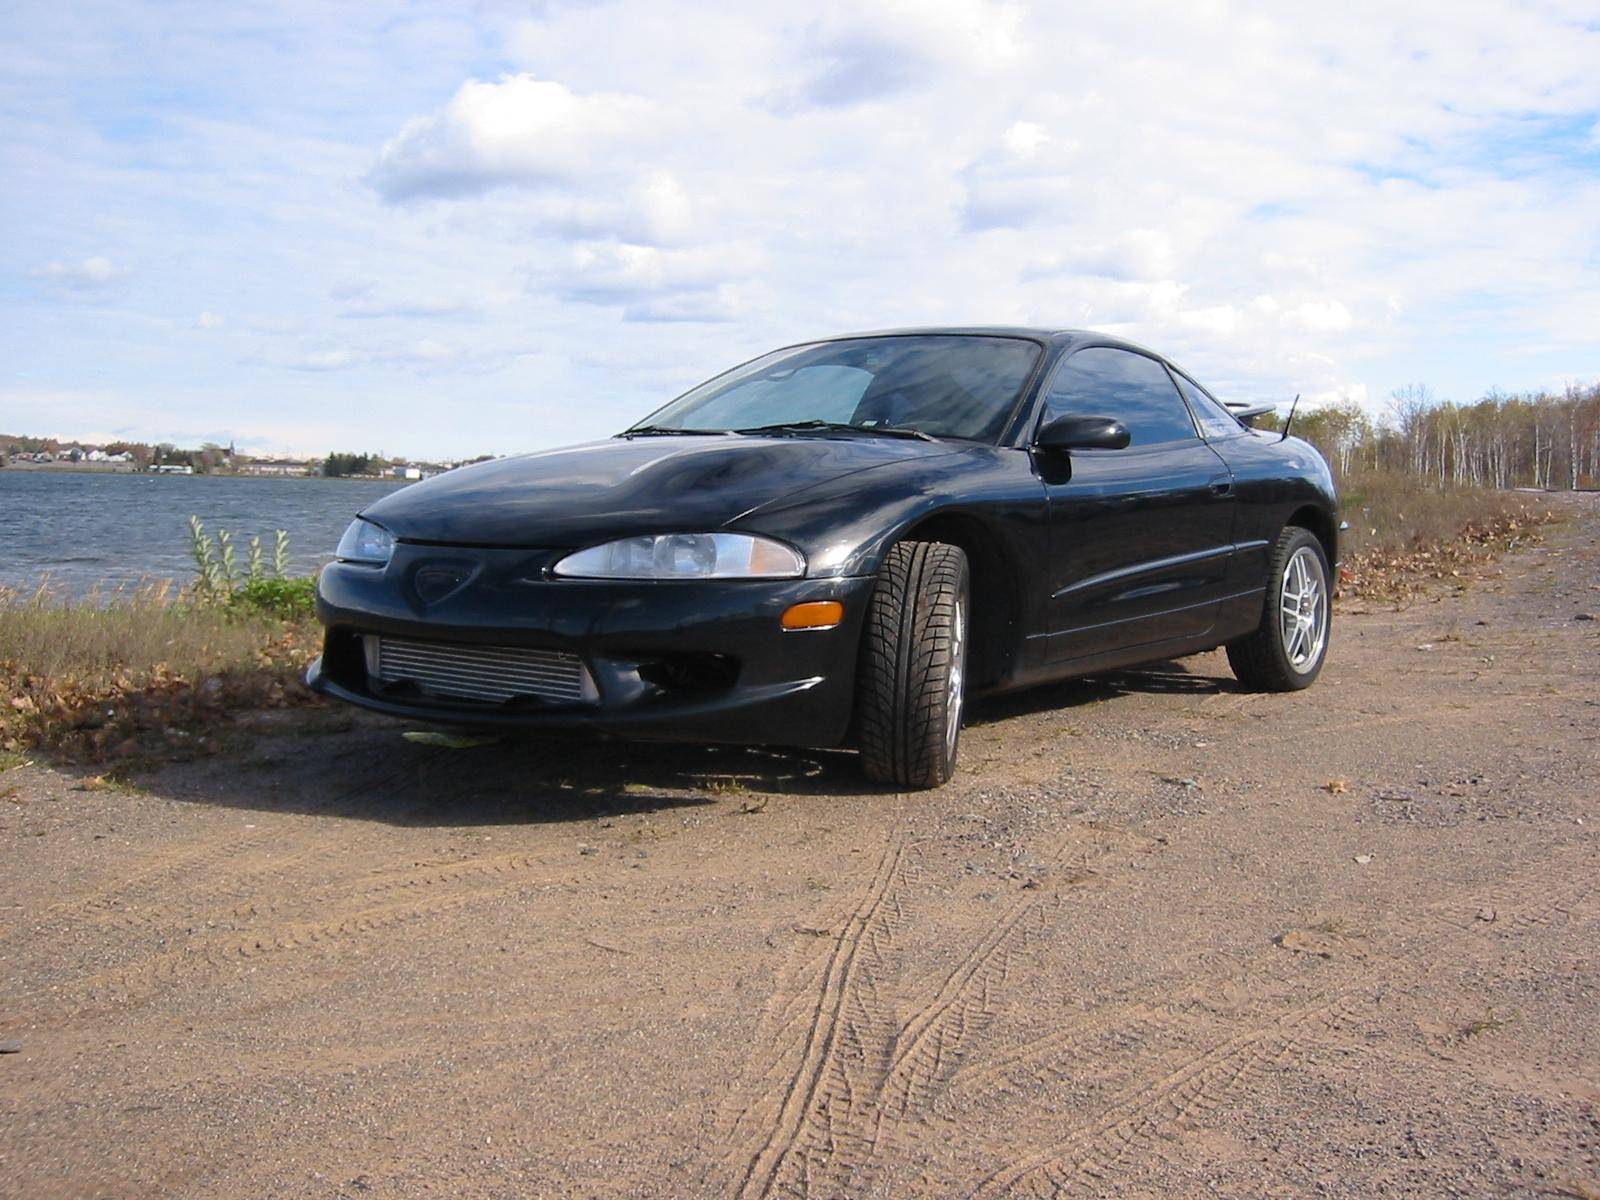 Eagle Talon #12